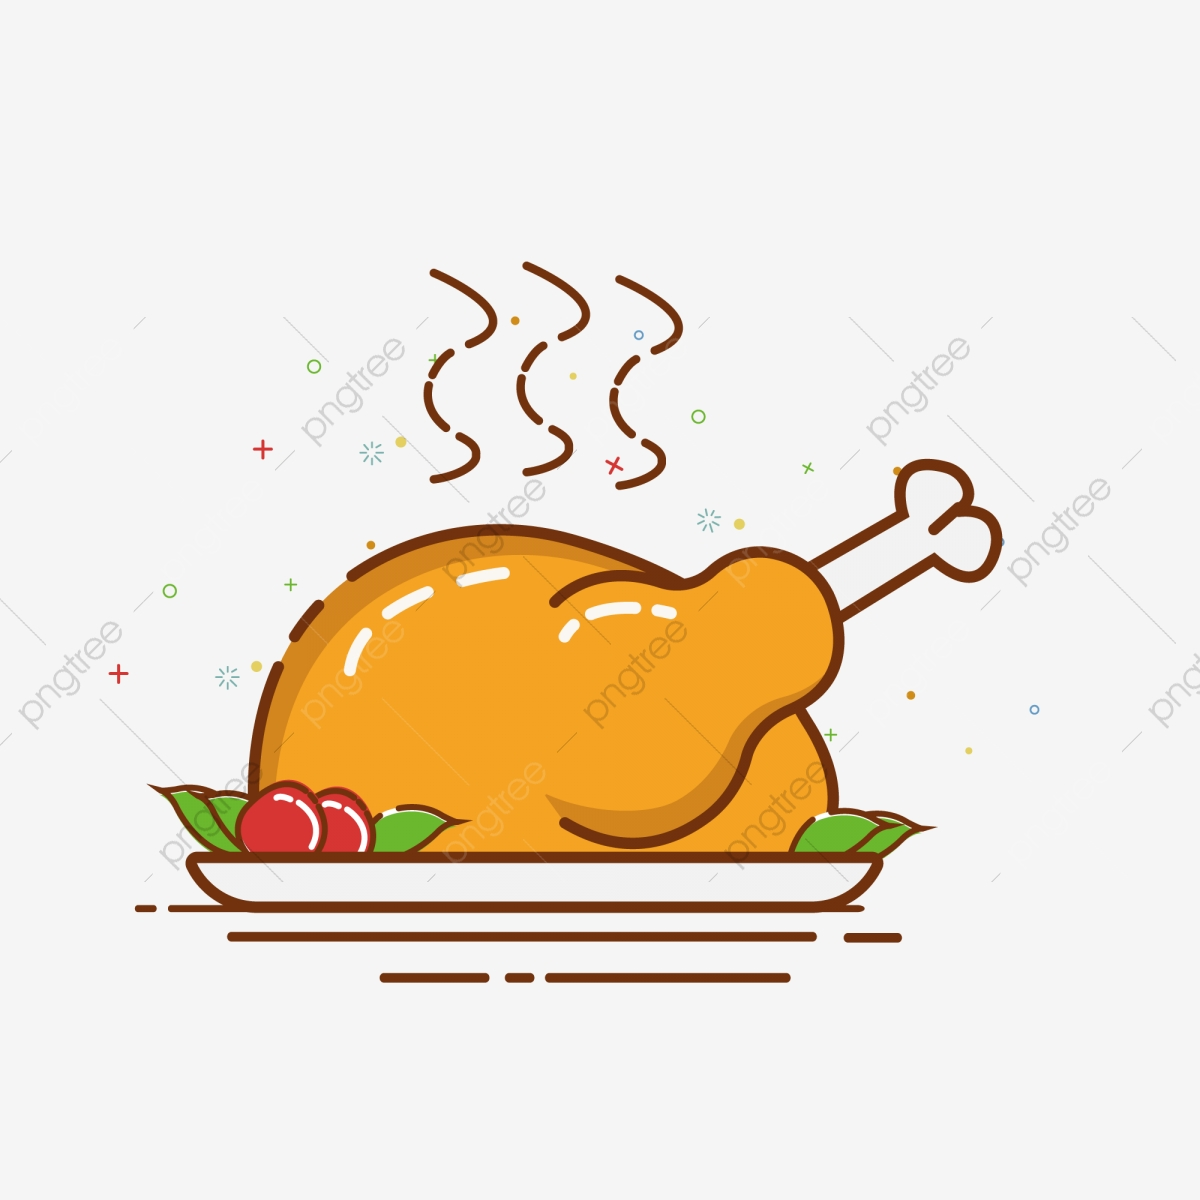 Cartoon Hand Drawn Meb Style Turkey Illustration Turkey Food Roast Chicken Png And Vector With Transparent Background For Free Download